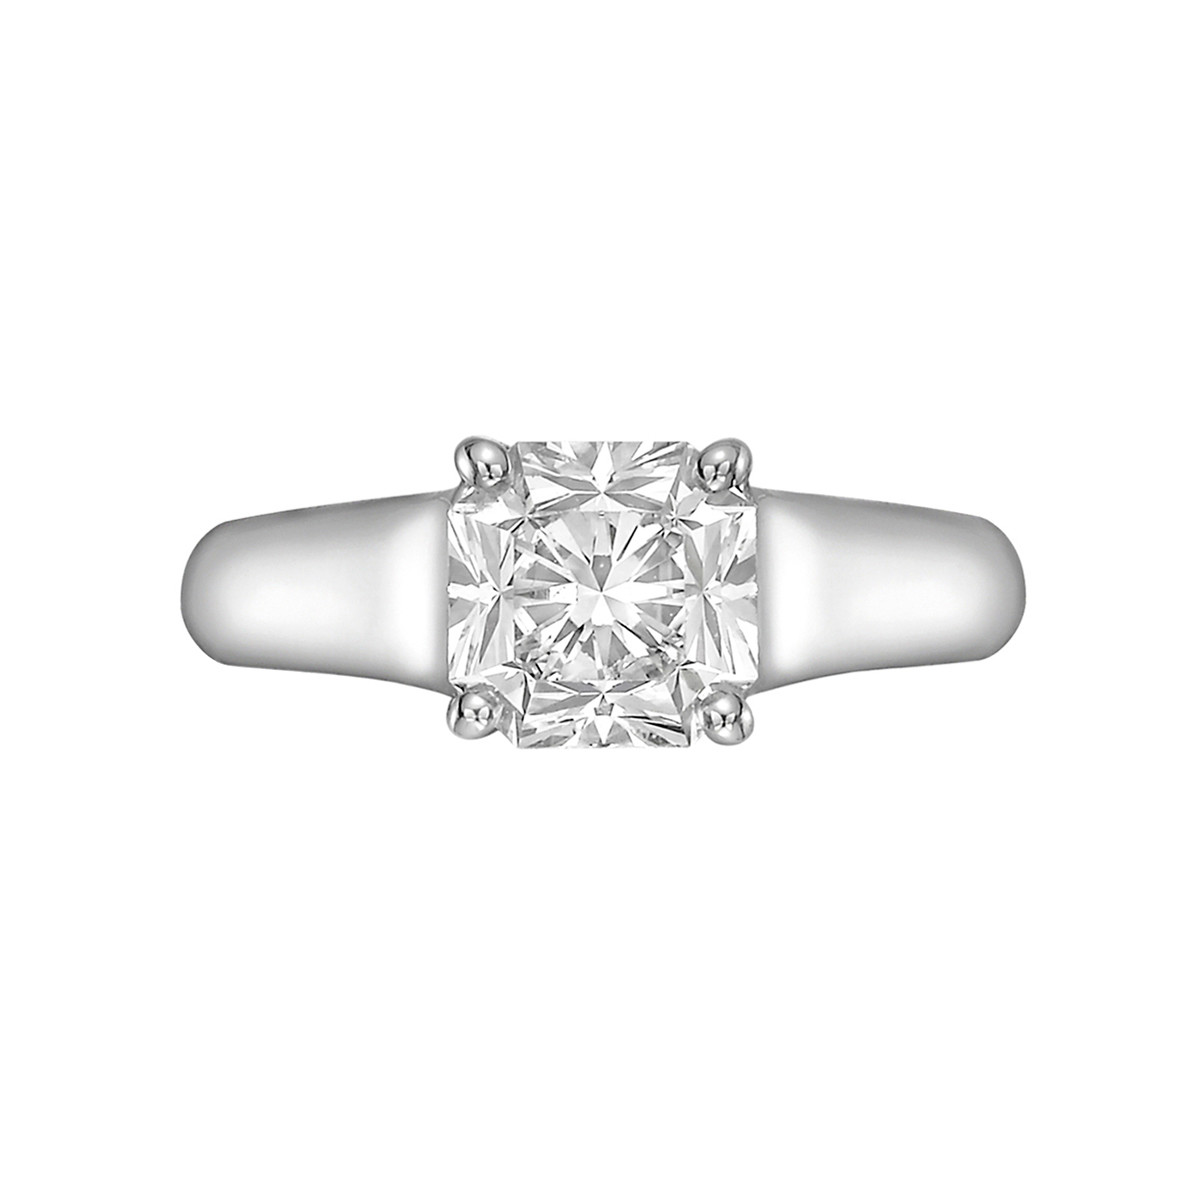 37f022039 Diamond solitaire engagement ring, centering a colorless 1.41 carat